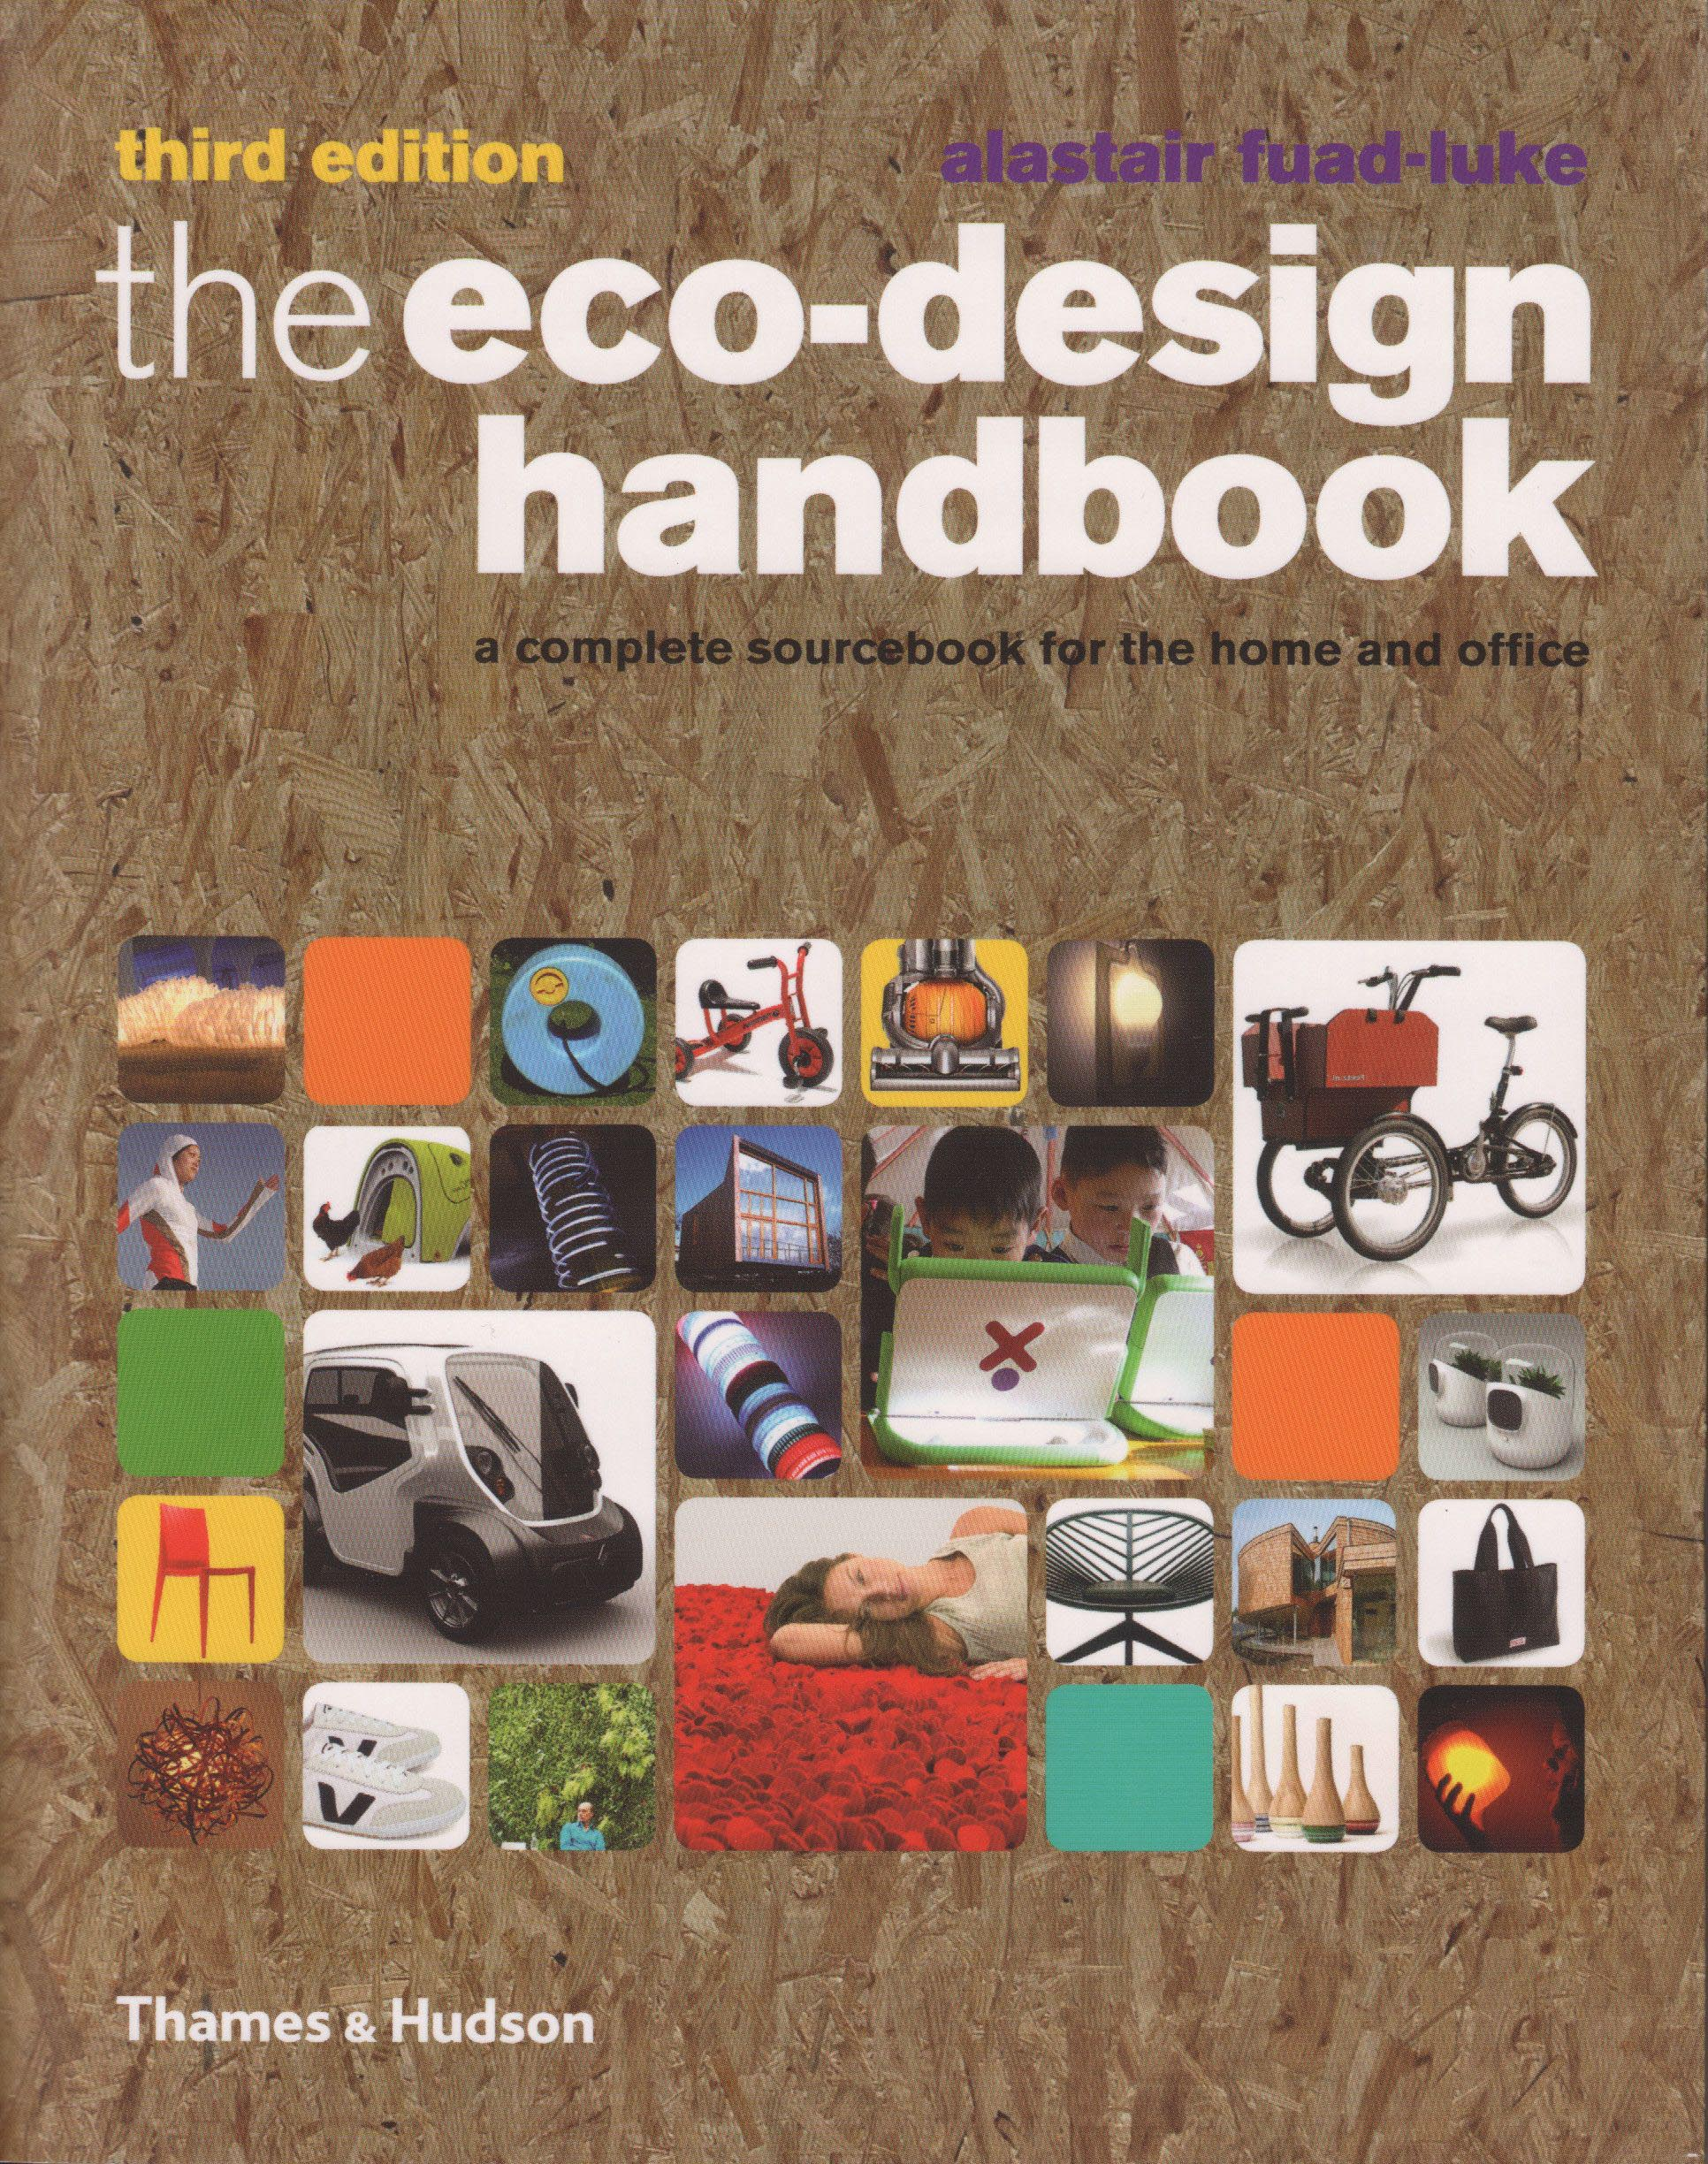 eco-design handbook 3rd edition 2009 cover